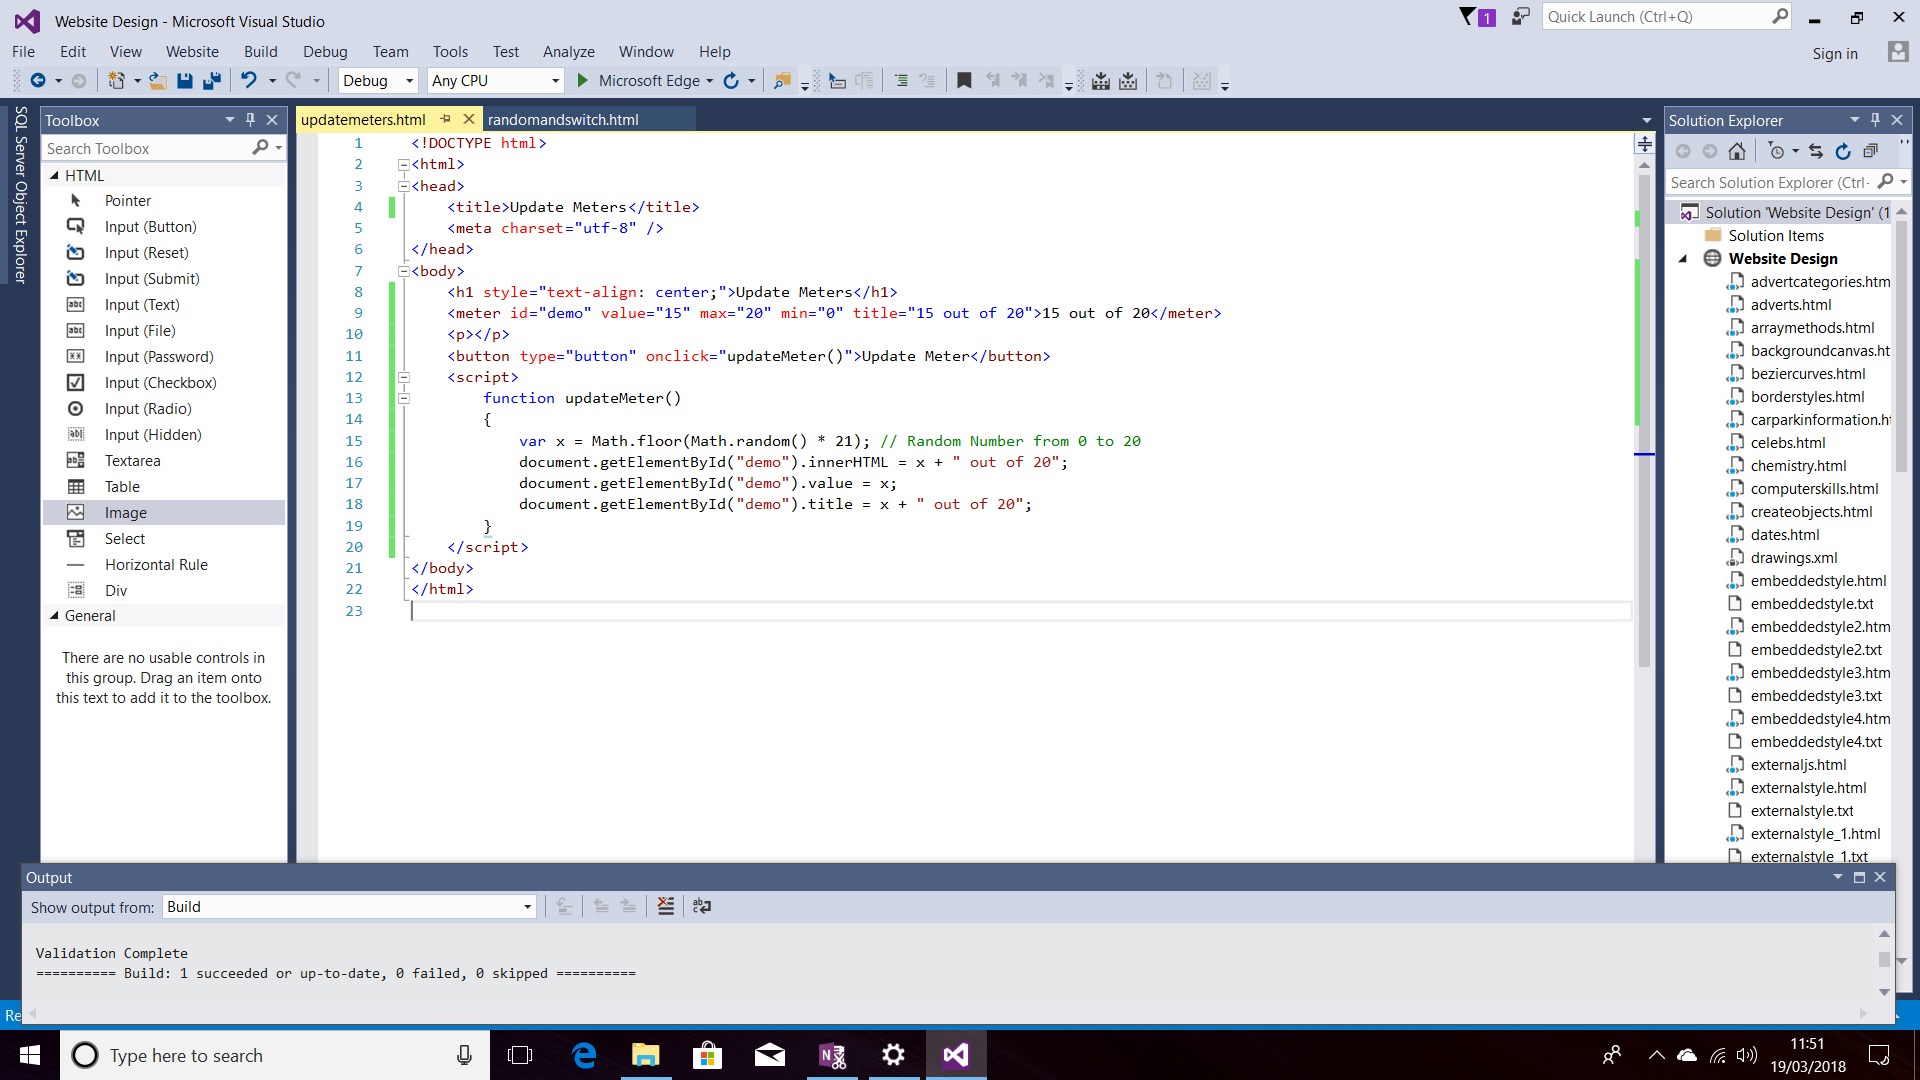 Screenshot of Internal JavaScript Code for a Function that